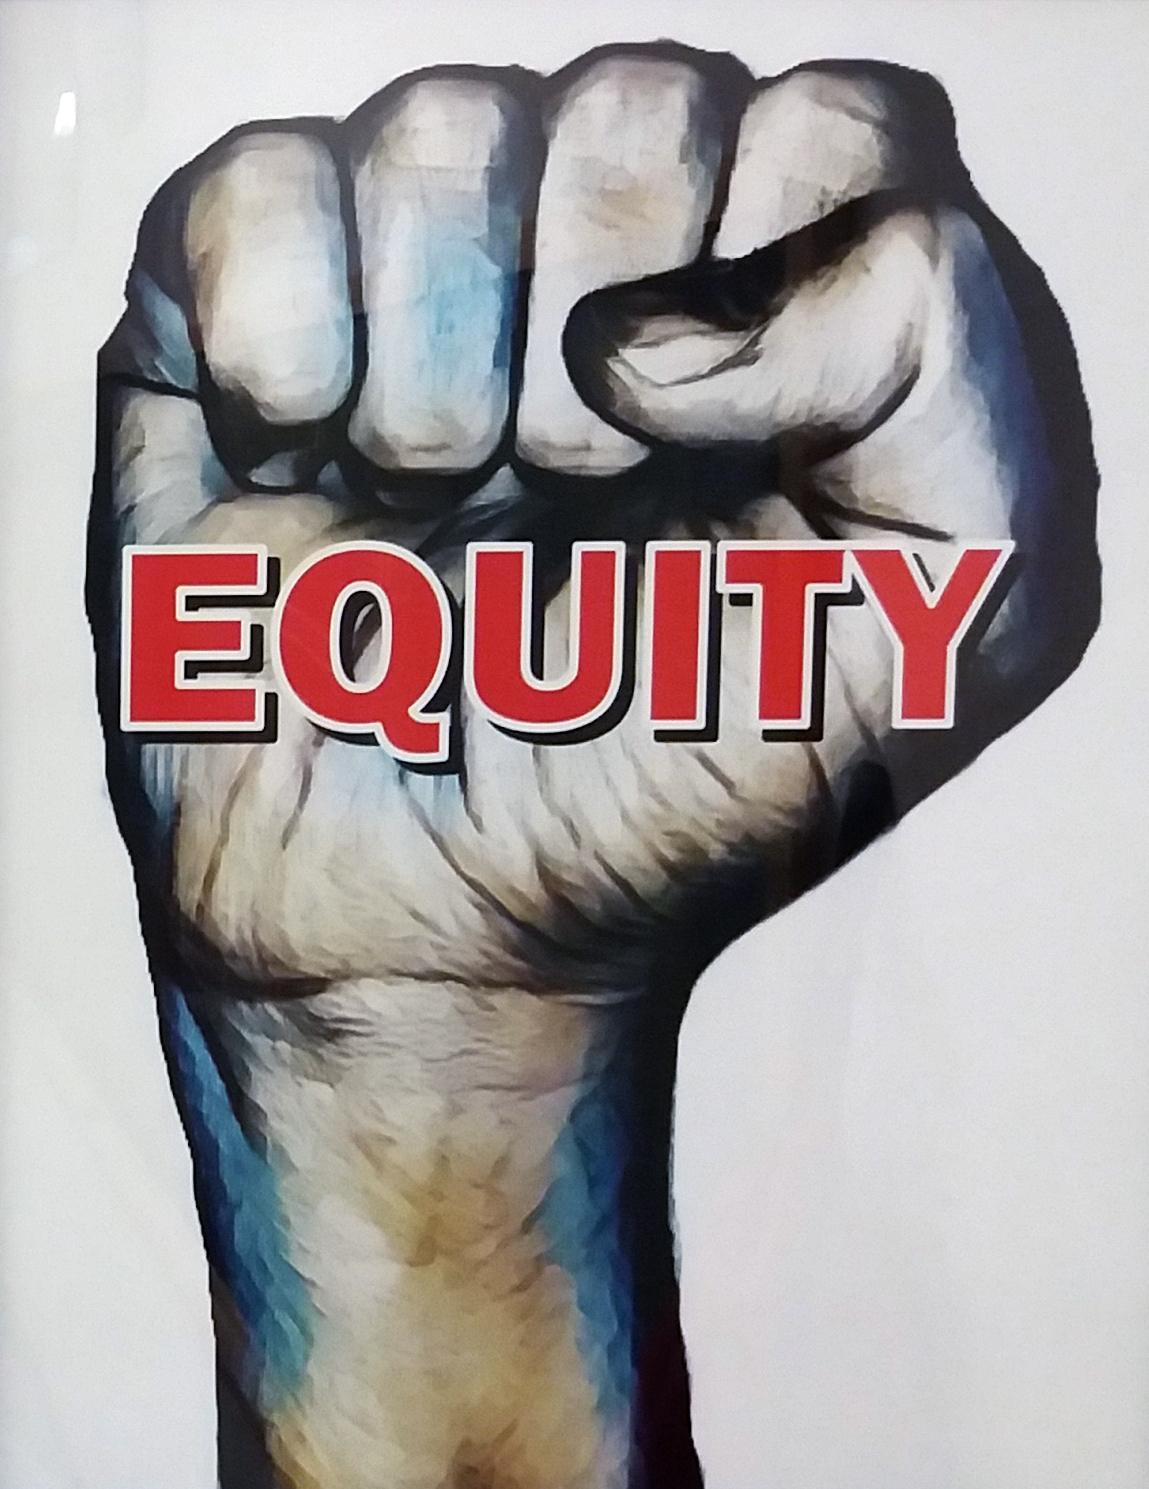 Equity fist